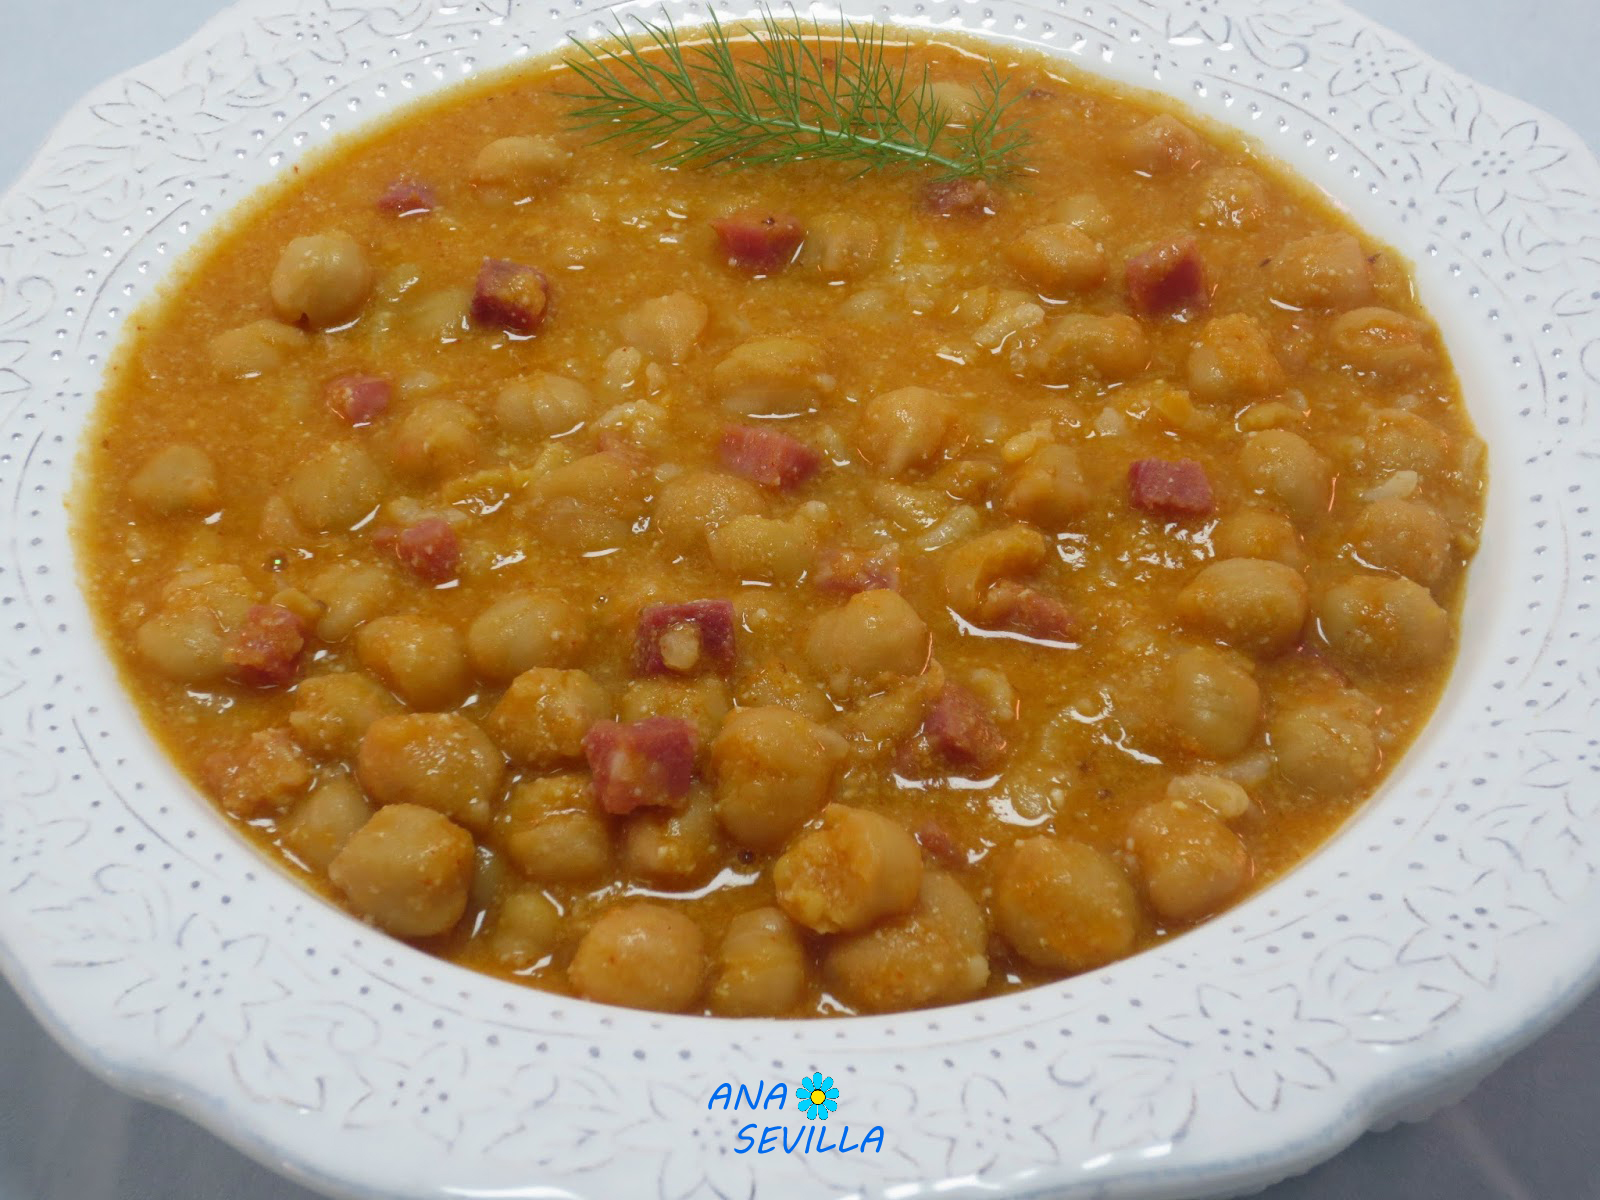 Garbanzos con arroz olla gm - Potaje garbanzos con arroz ...